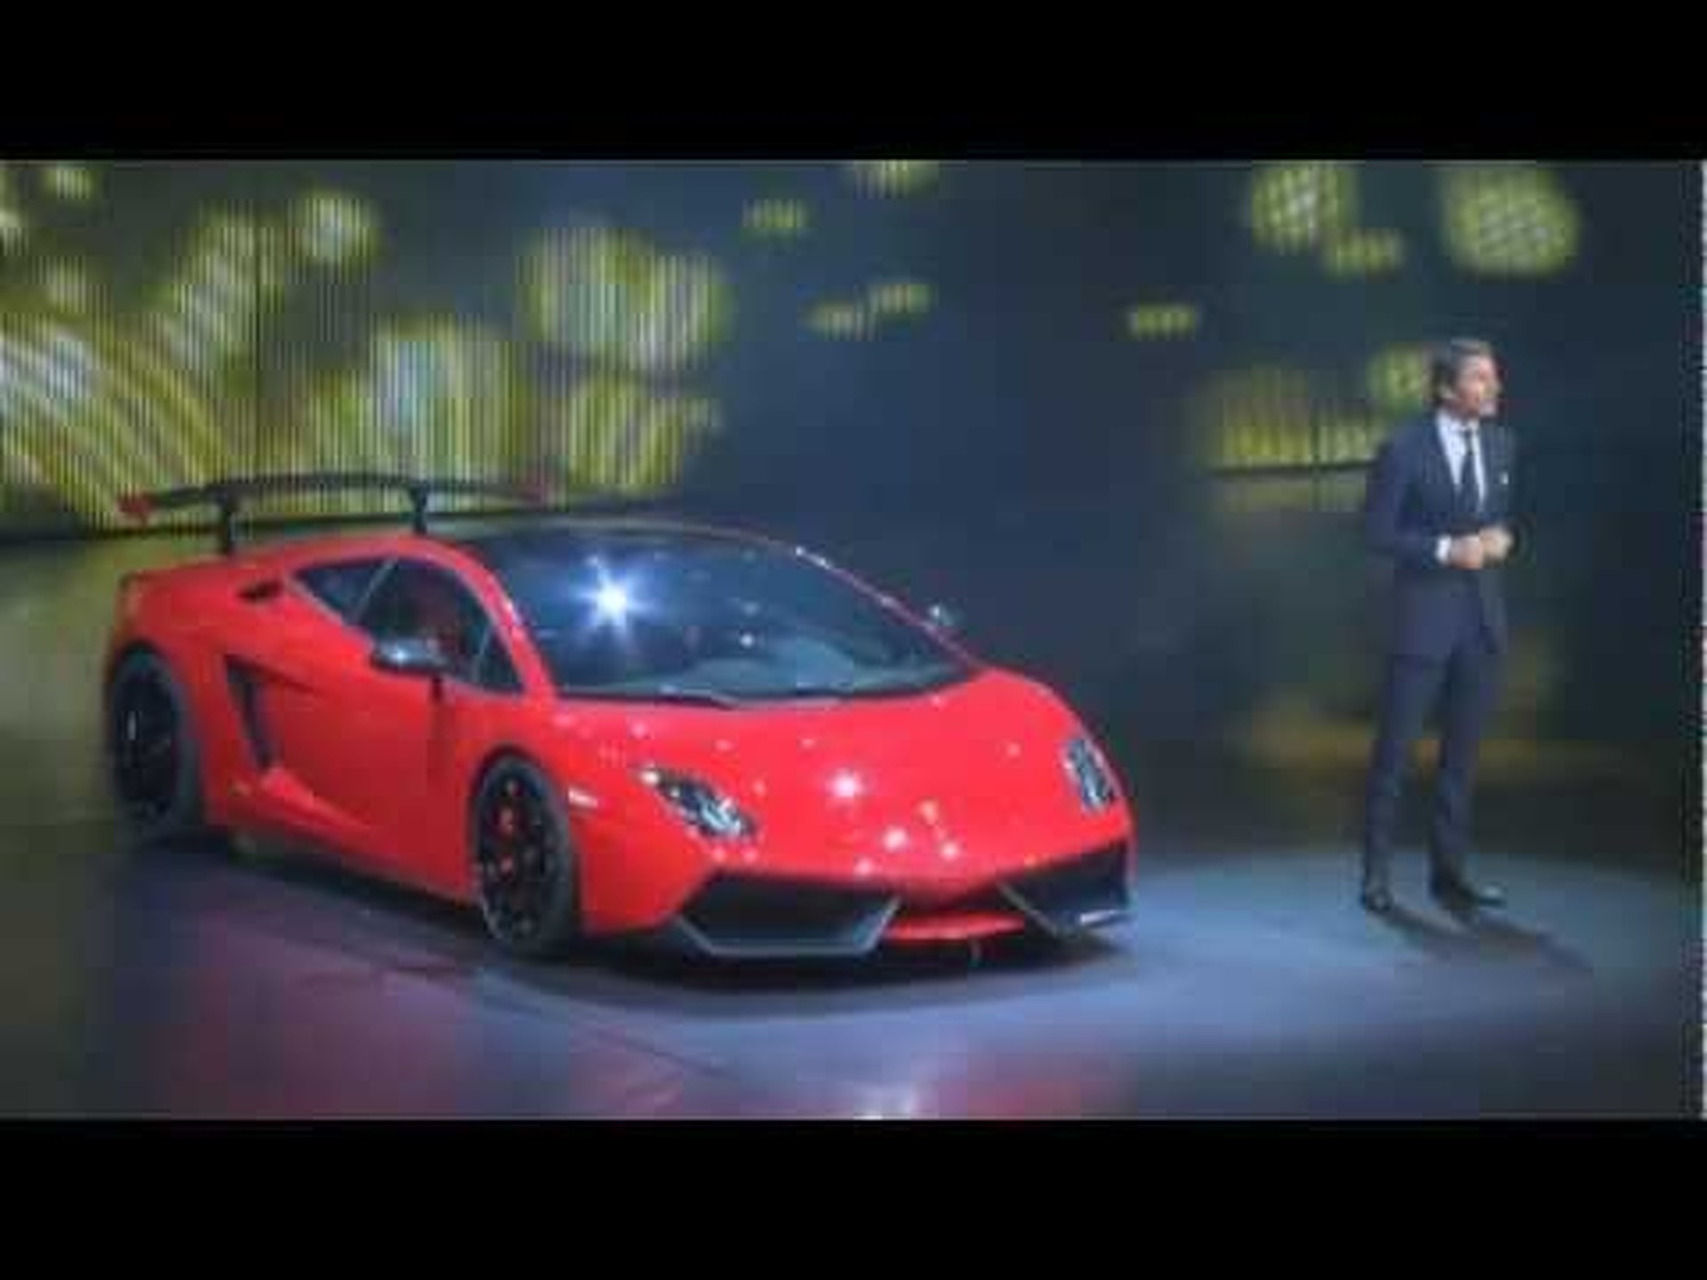 2012 Lamborghini Gallardo LP 570-4 Super Trofeo Stradale revealed at the 2011 Frankfurt Motor Show